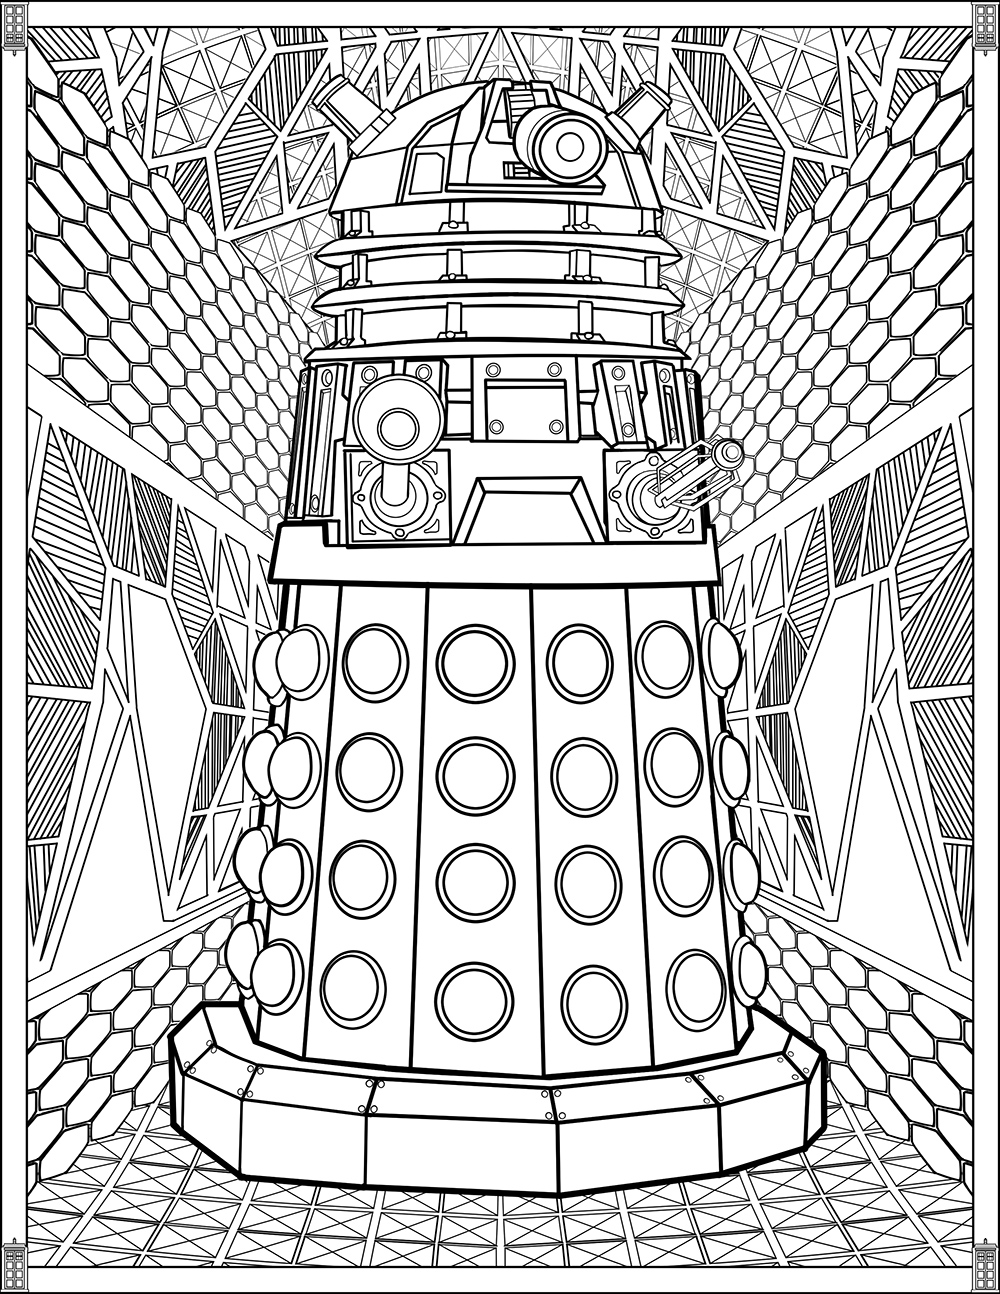 coloring images doctor who wibbly wobbly timey wimey coloring pages coloring images